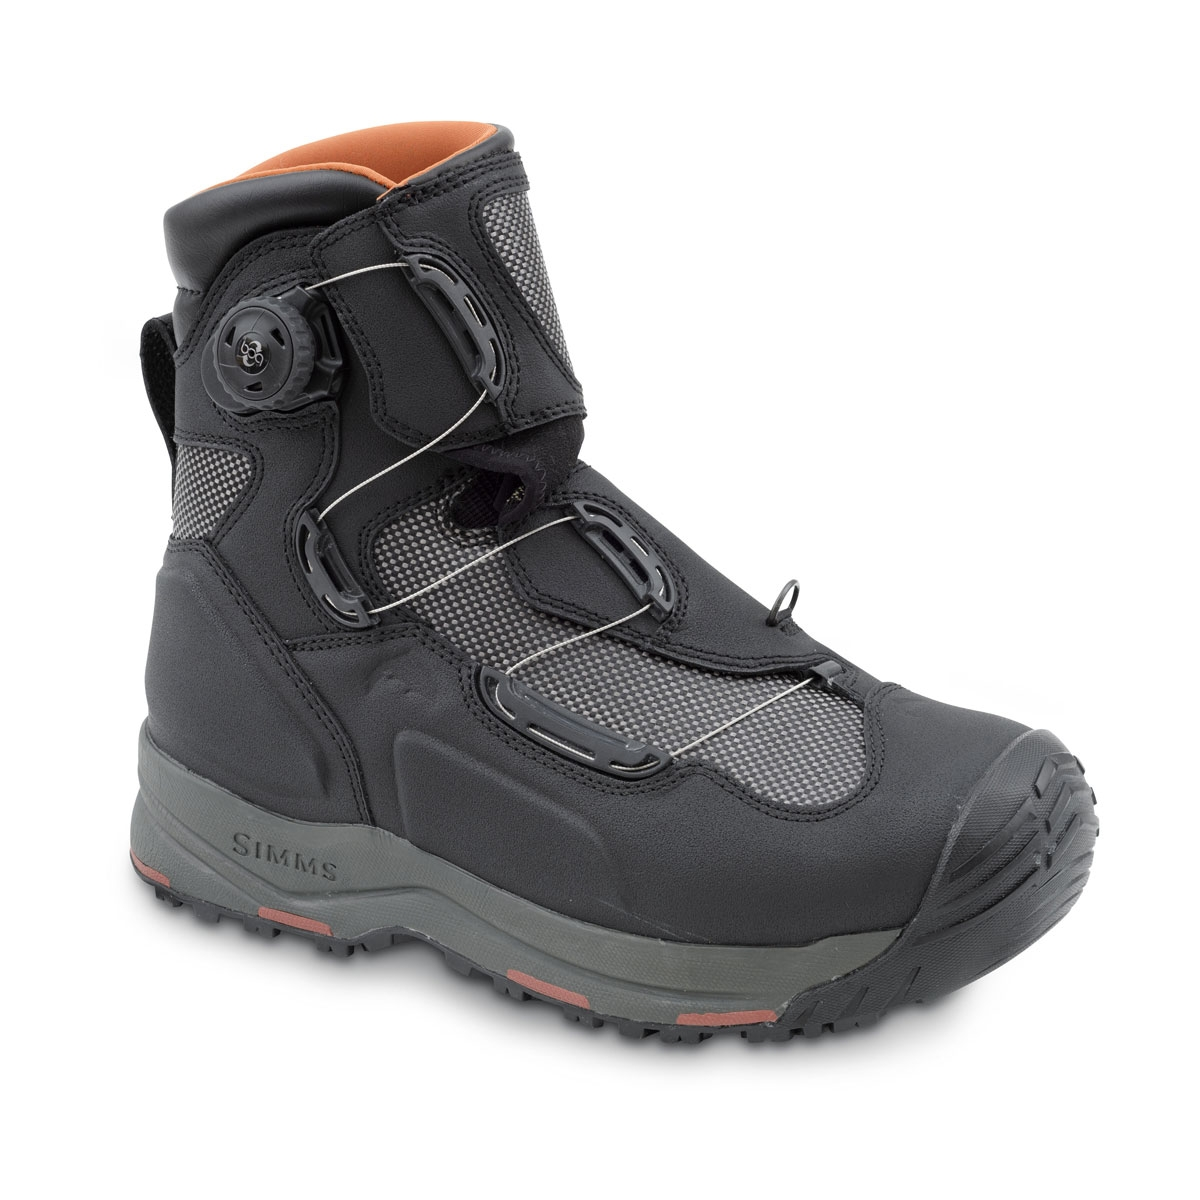 Simms G4 Boa Wading Boots Black Uttings Co Uk